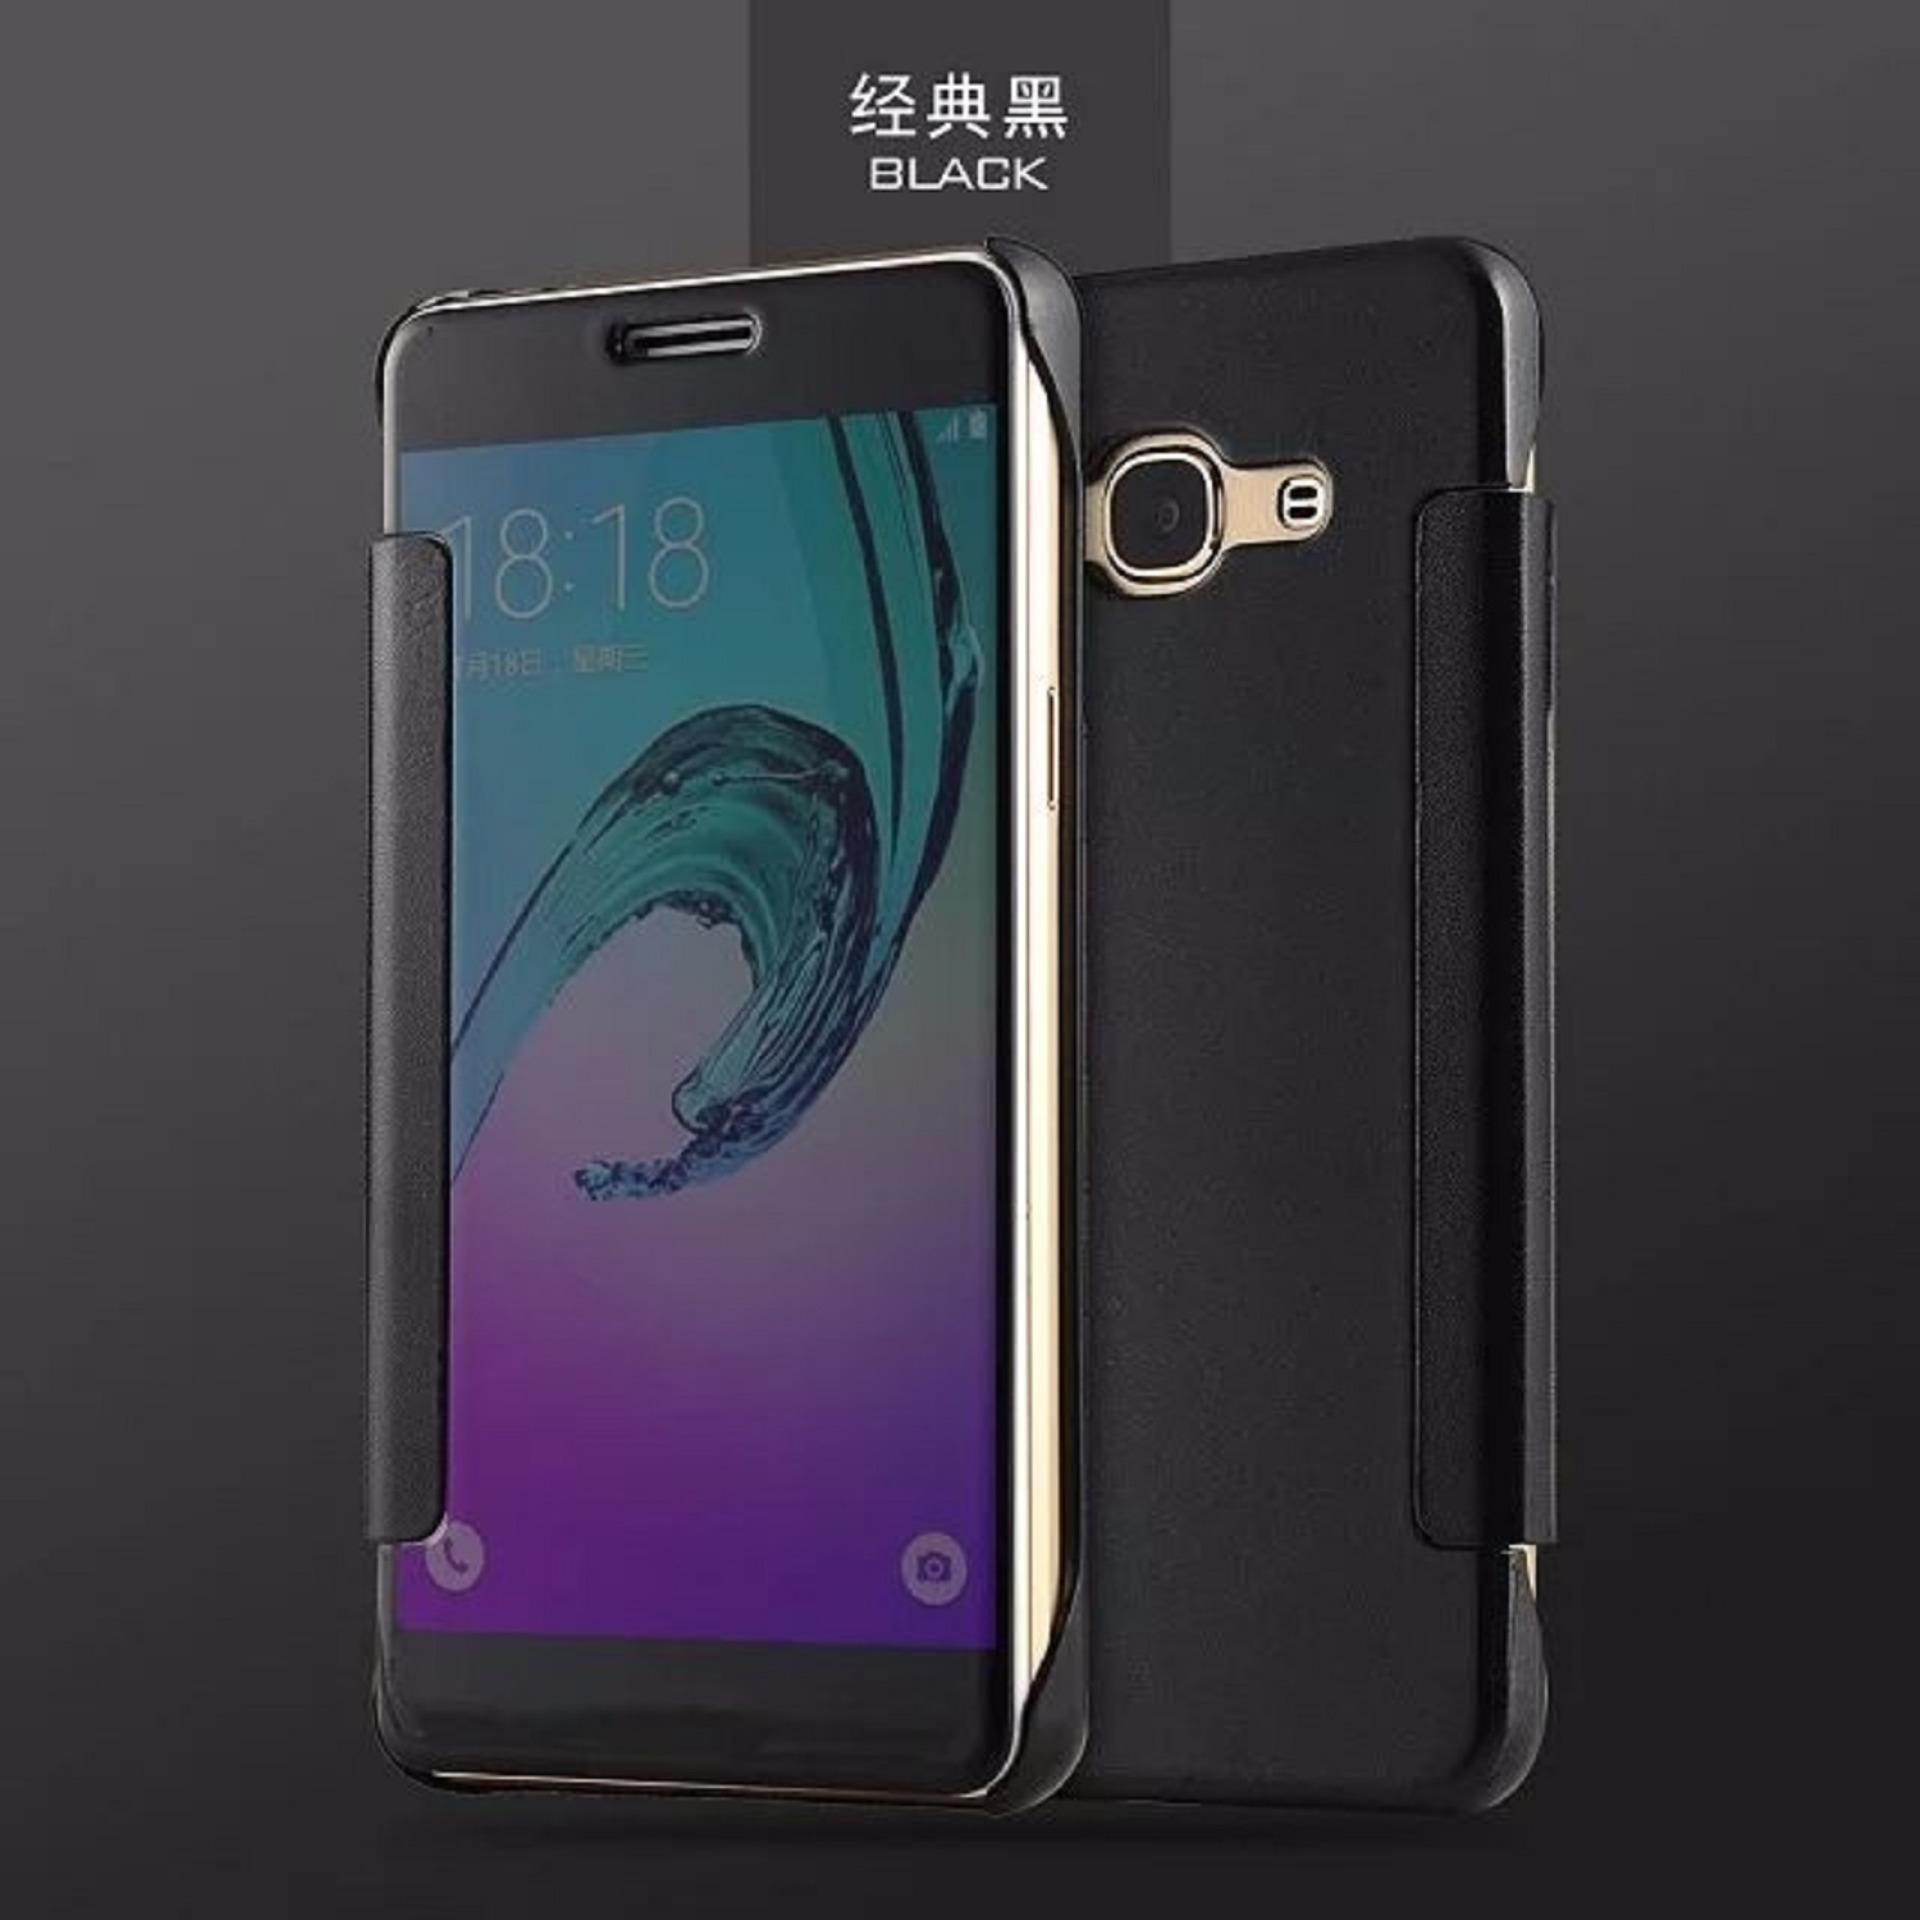 ... OEM Case Samsung Galaxy A3 2017 Flipcase Flip Mirror Cover S ViewTransparan Auto Lock Casing Hp